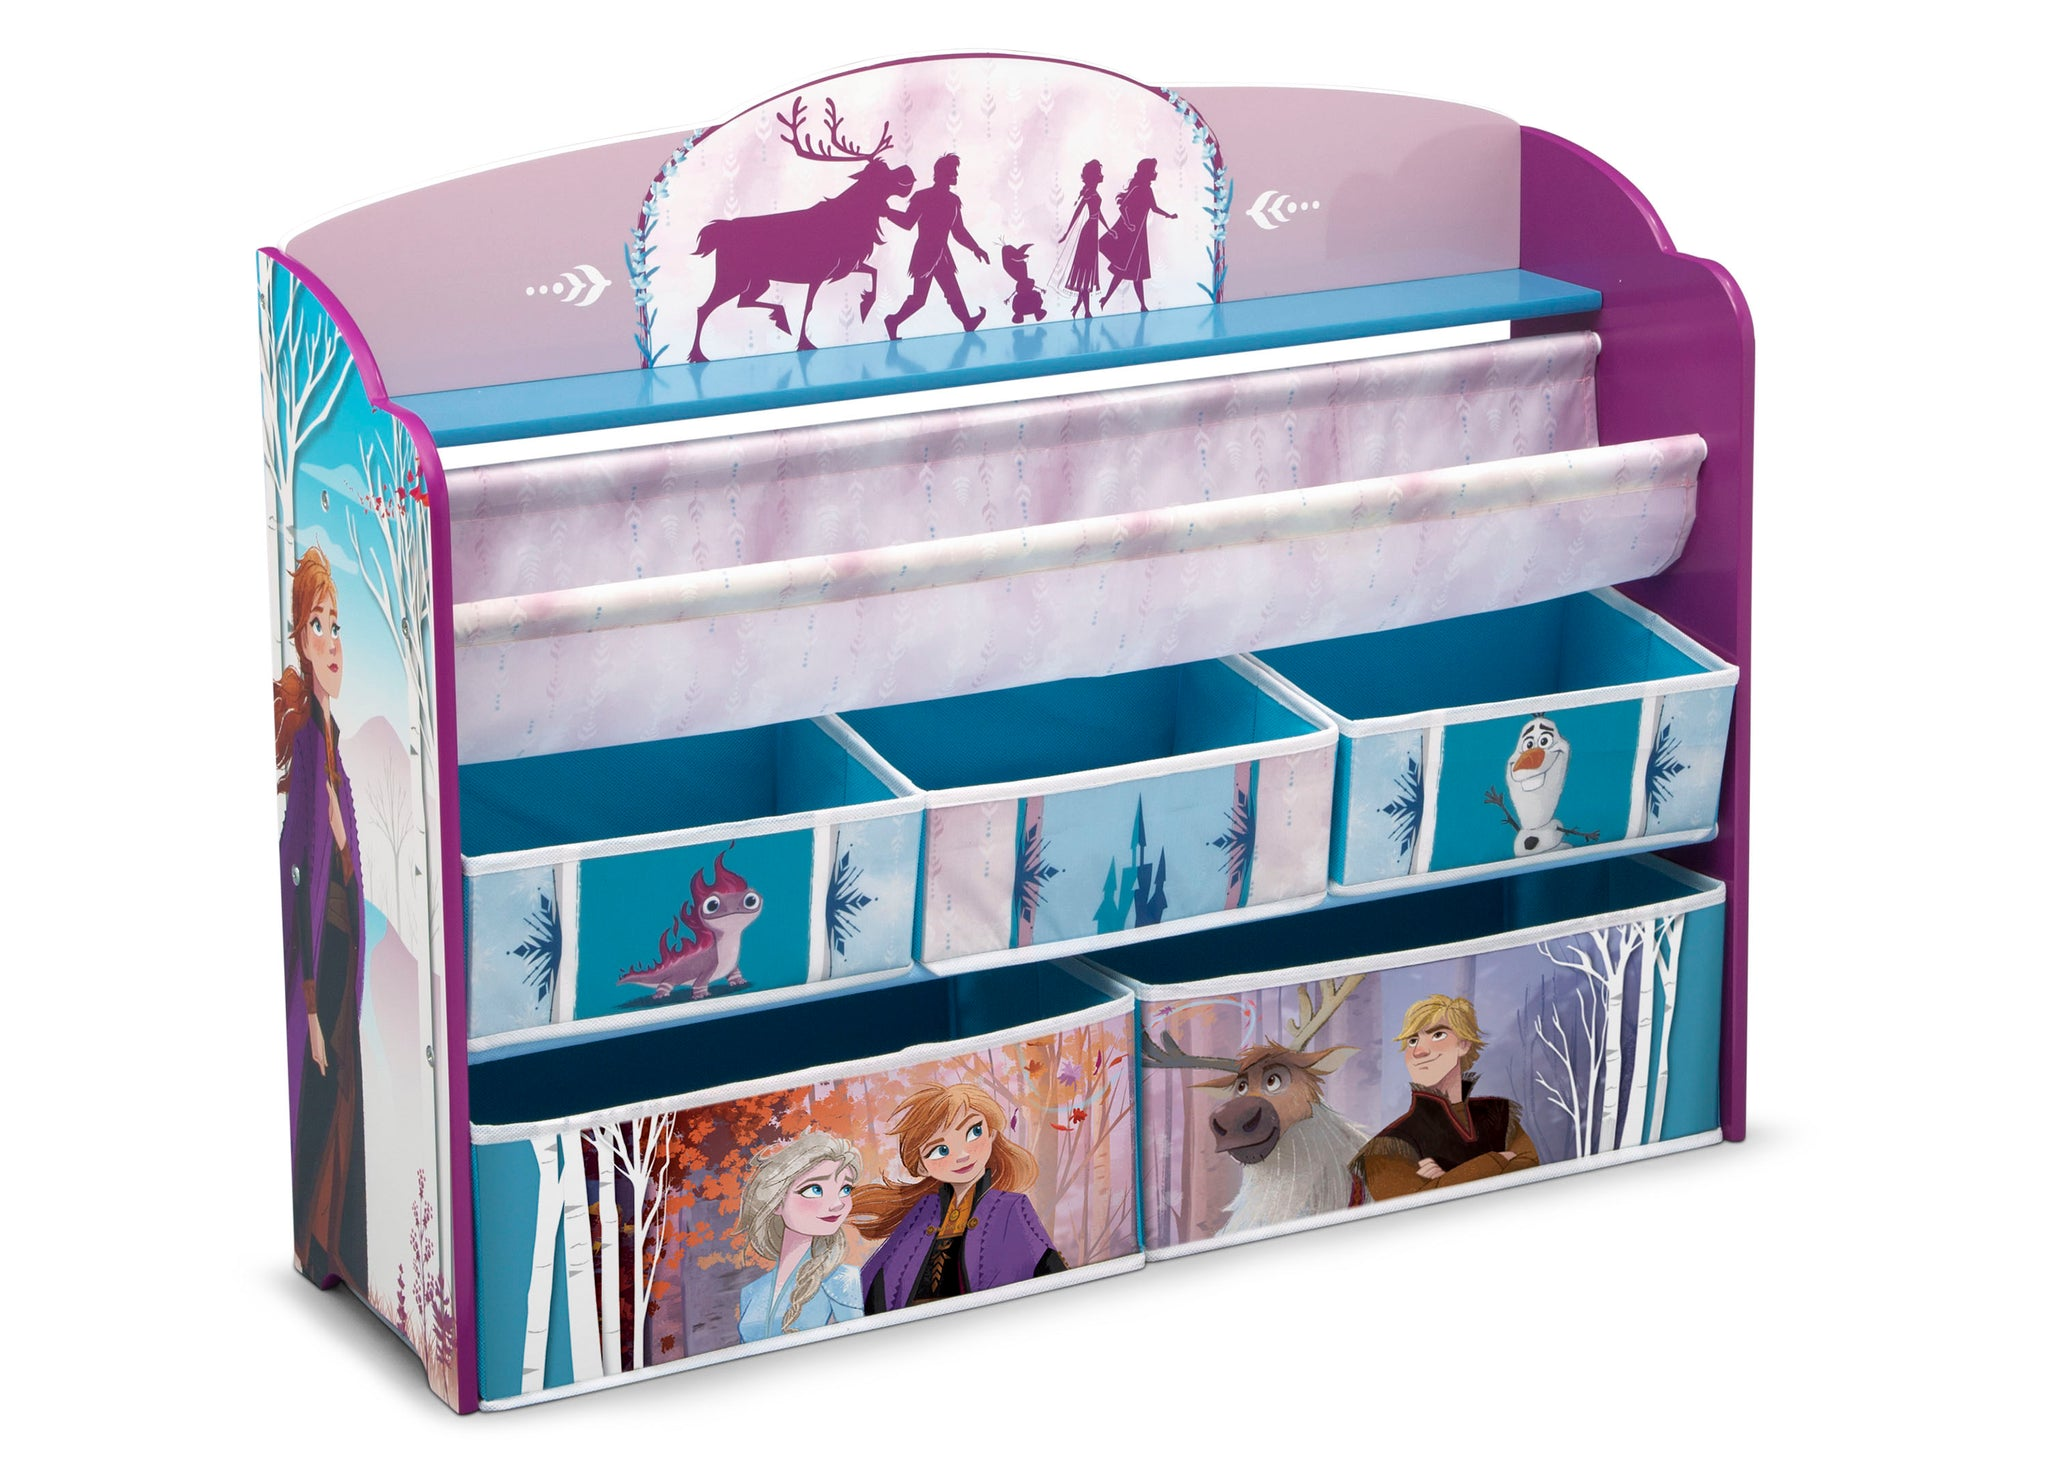 Delta Children Frozen 2 (1097) Deluxe Toy and Book Organizer, Right Silo View